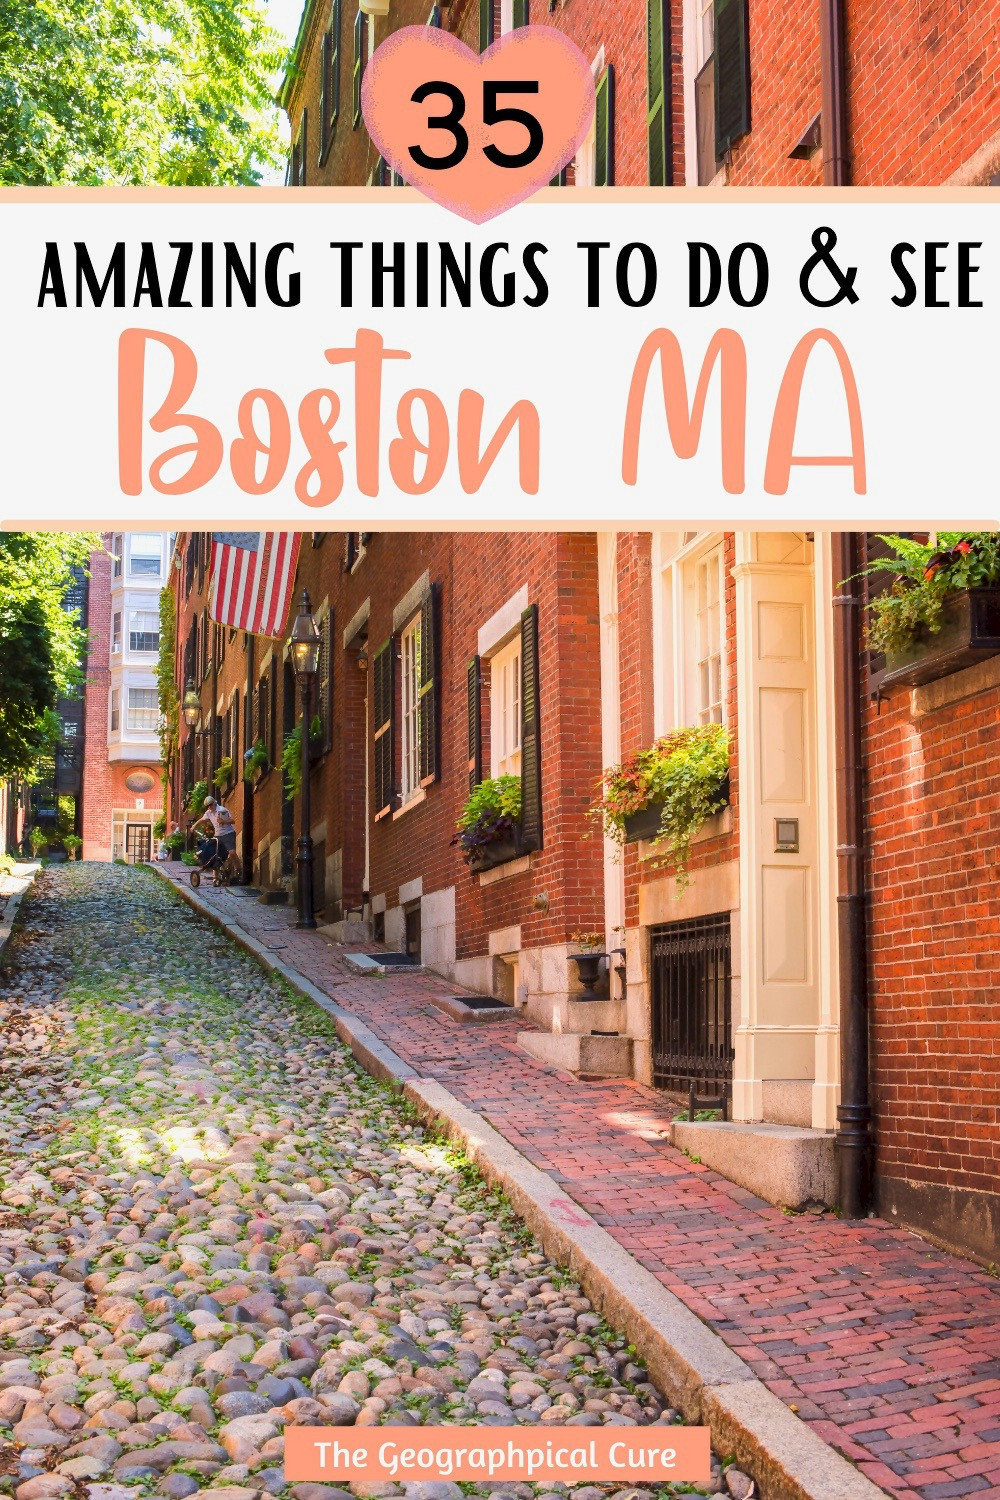 ultimate guide to must see sites in Boston